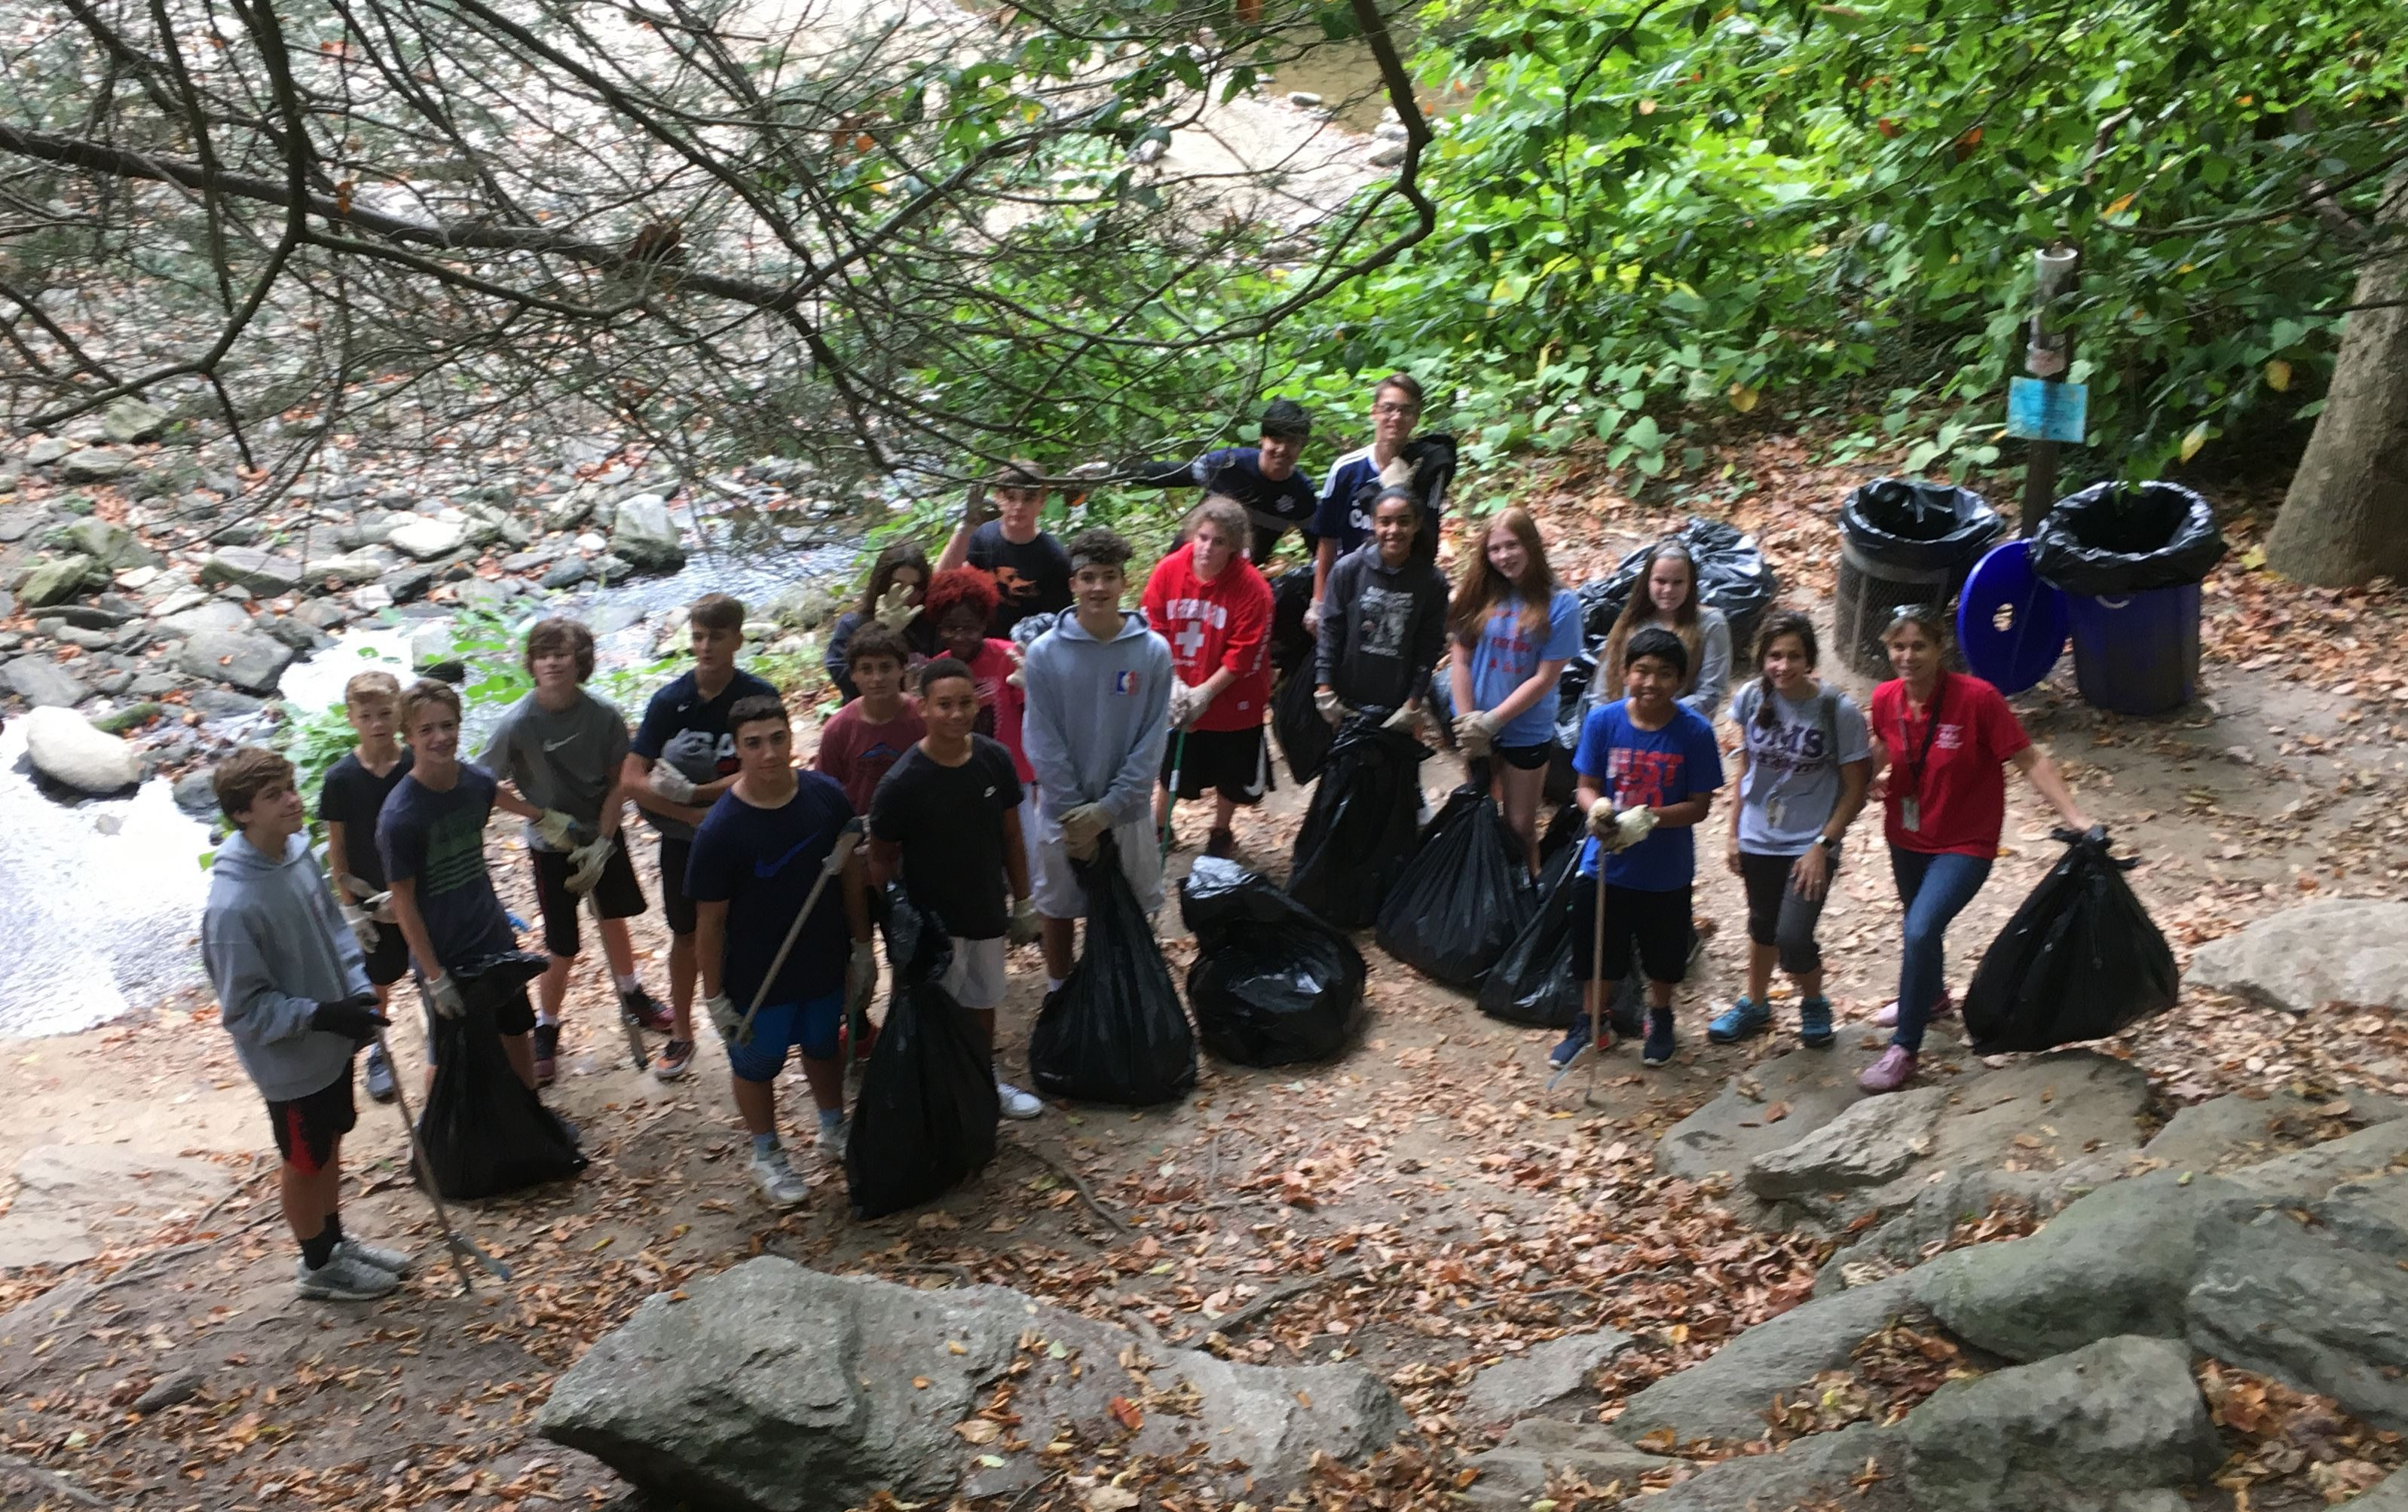 Approximately 15 students in the woods near the edge of water with trashbags